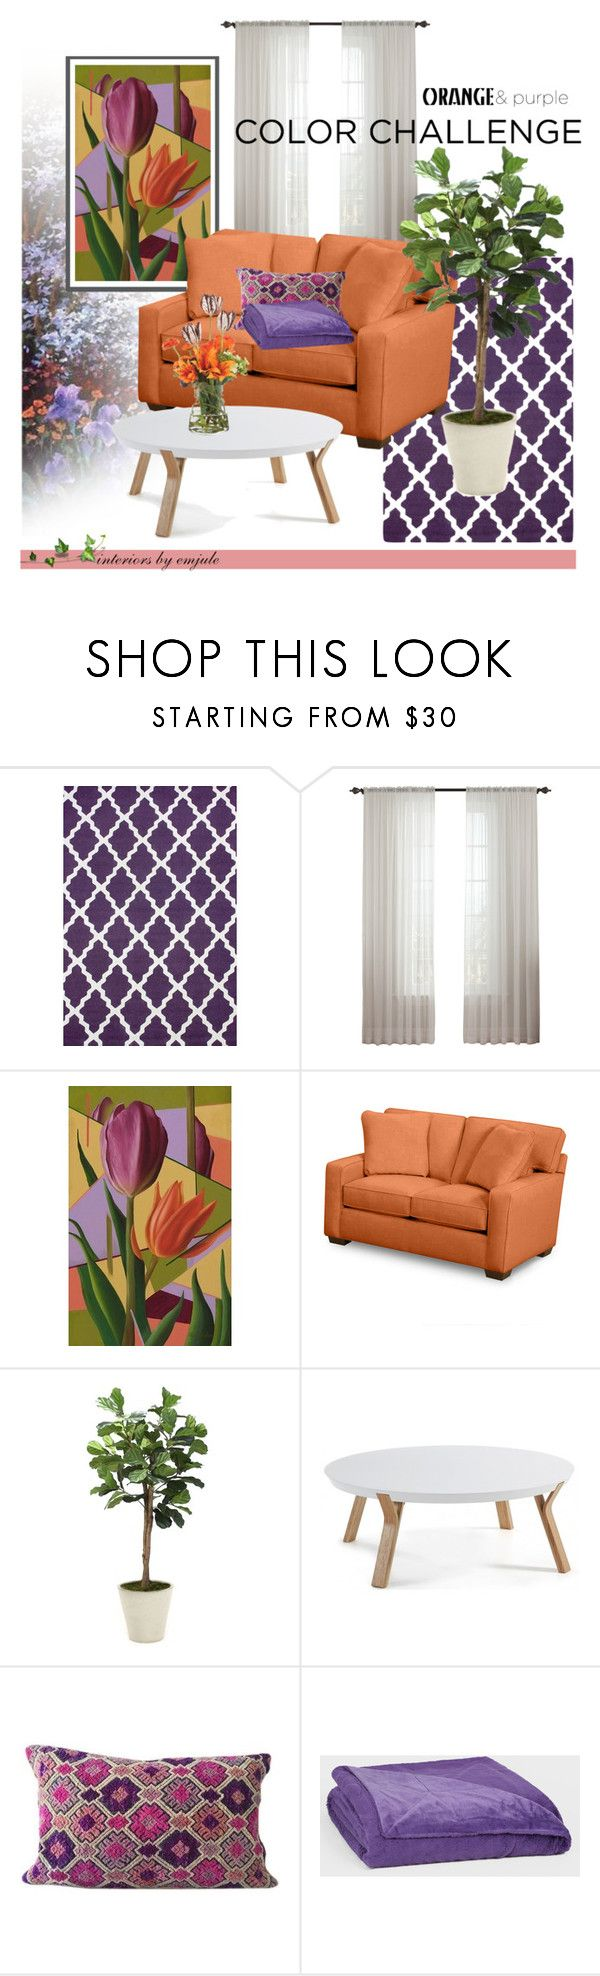 Purple And Orange By Emjule Liked On Polyvore Featuring Interior Interiors